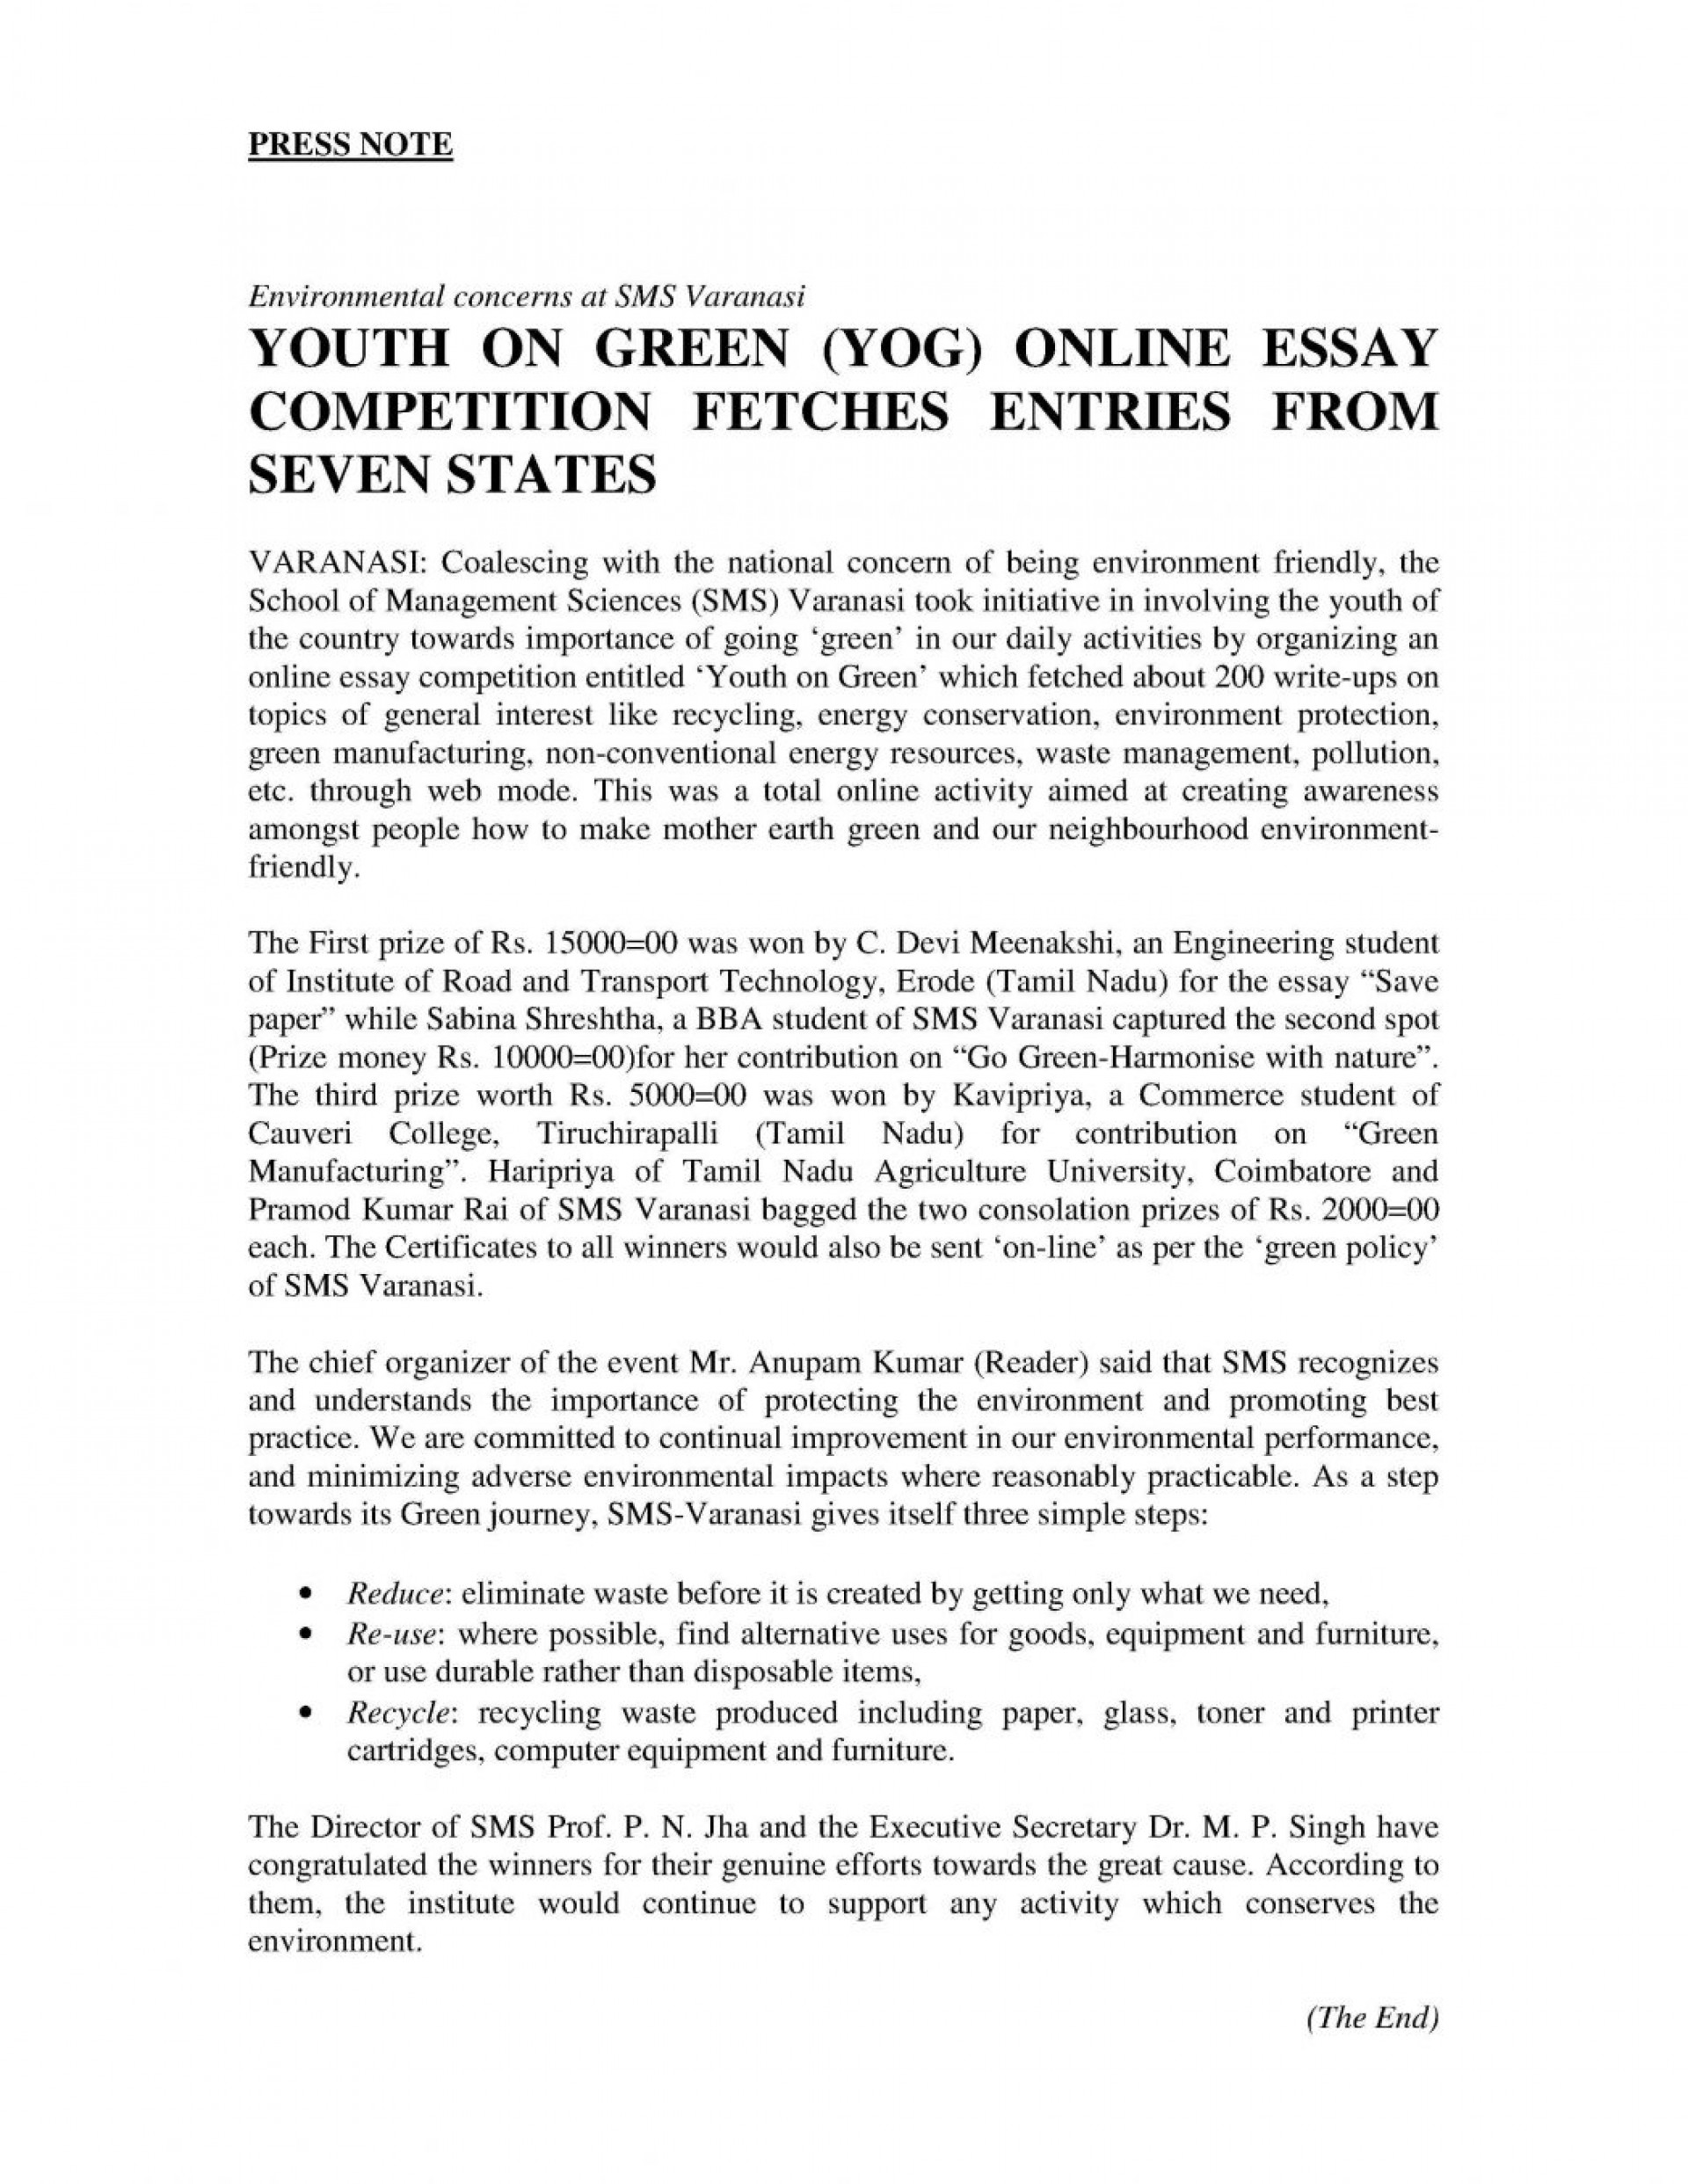 020 Best Essays For College Essay On Good Habits How Tot Application Online Yog Press Re About Yourself Examples Your Background Failure Prompt Off Hook 1048x1356 Example Amazing To Start An Bad With A Question Ways Definition 1920